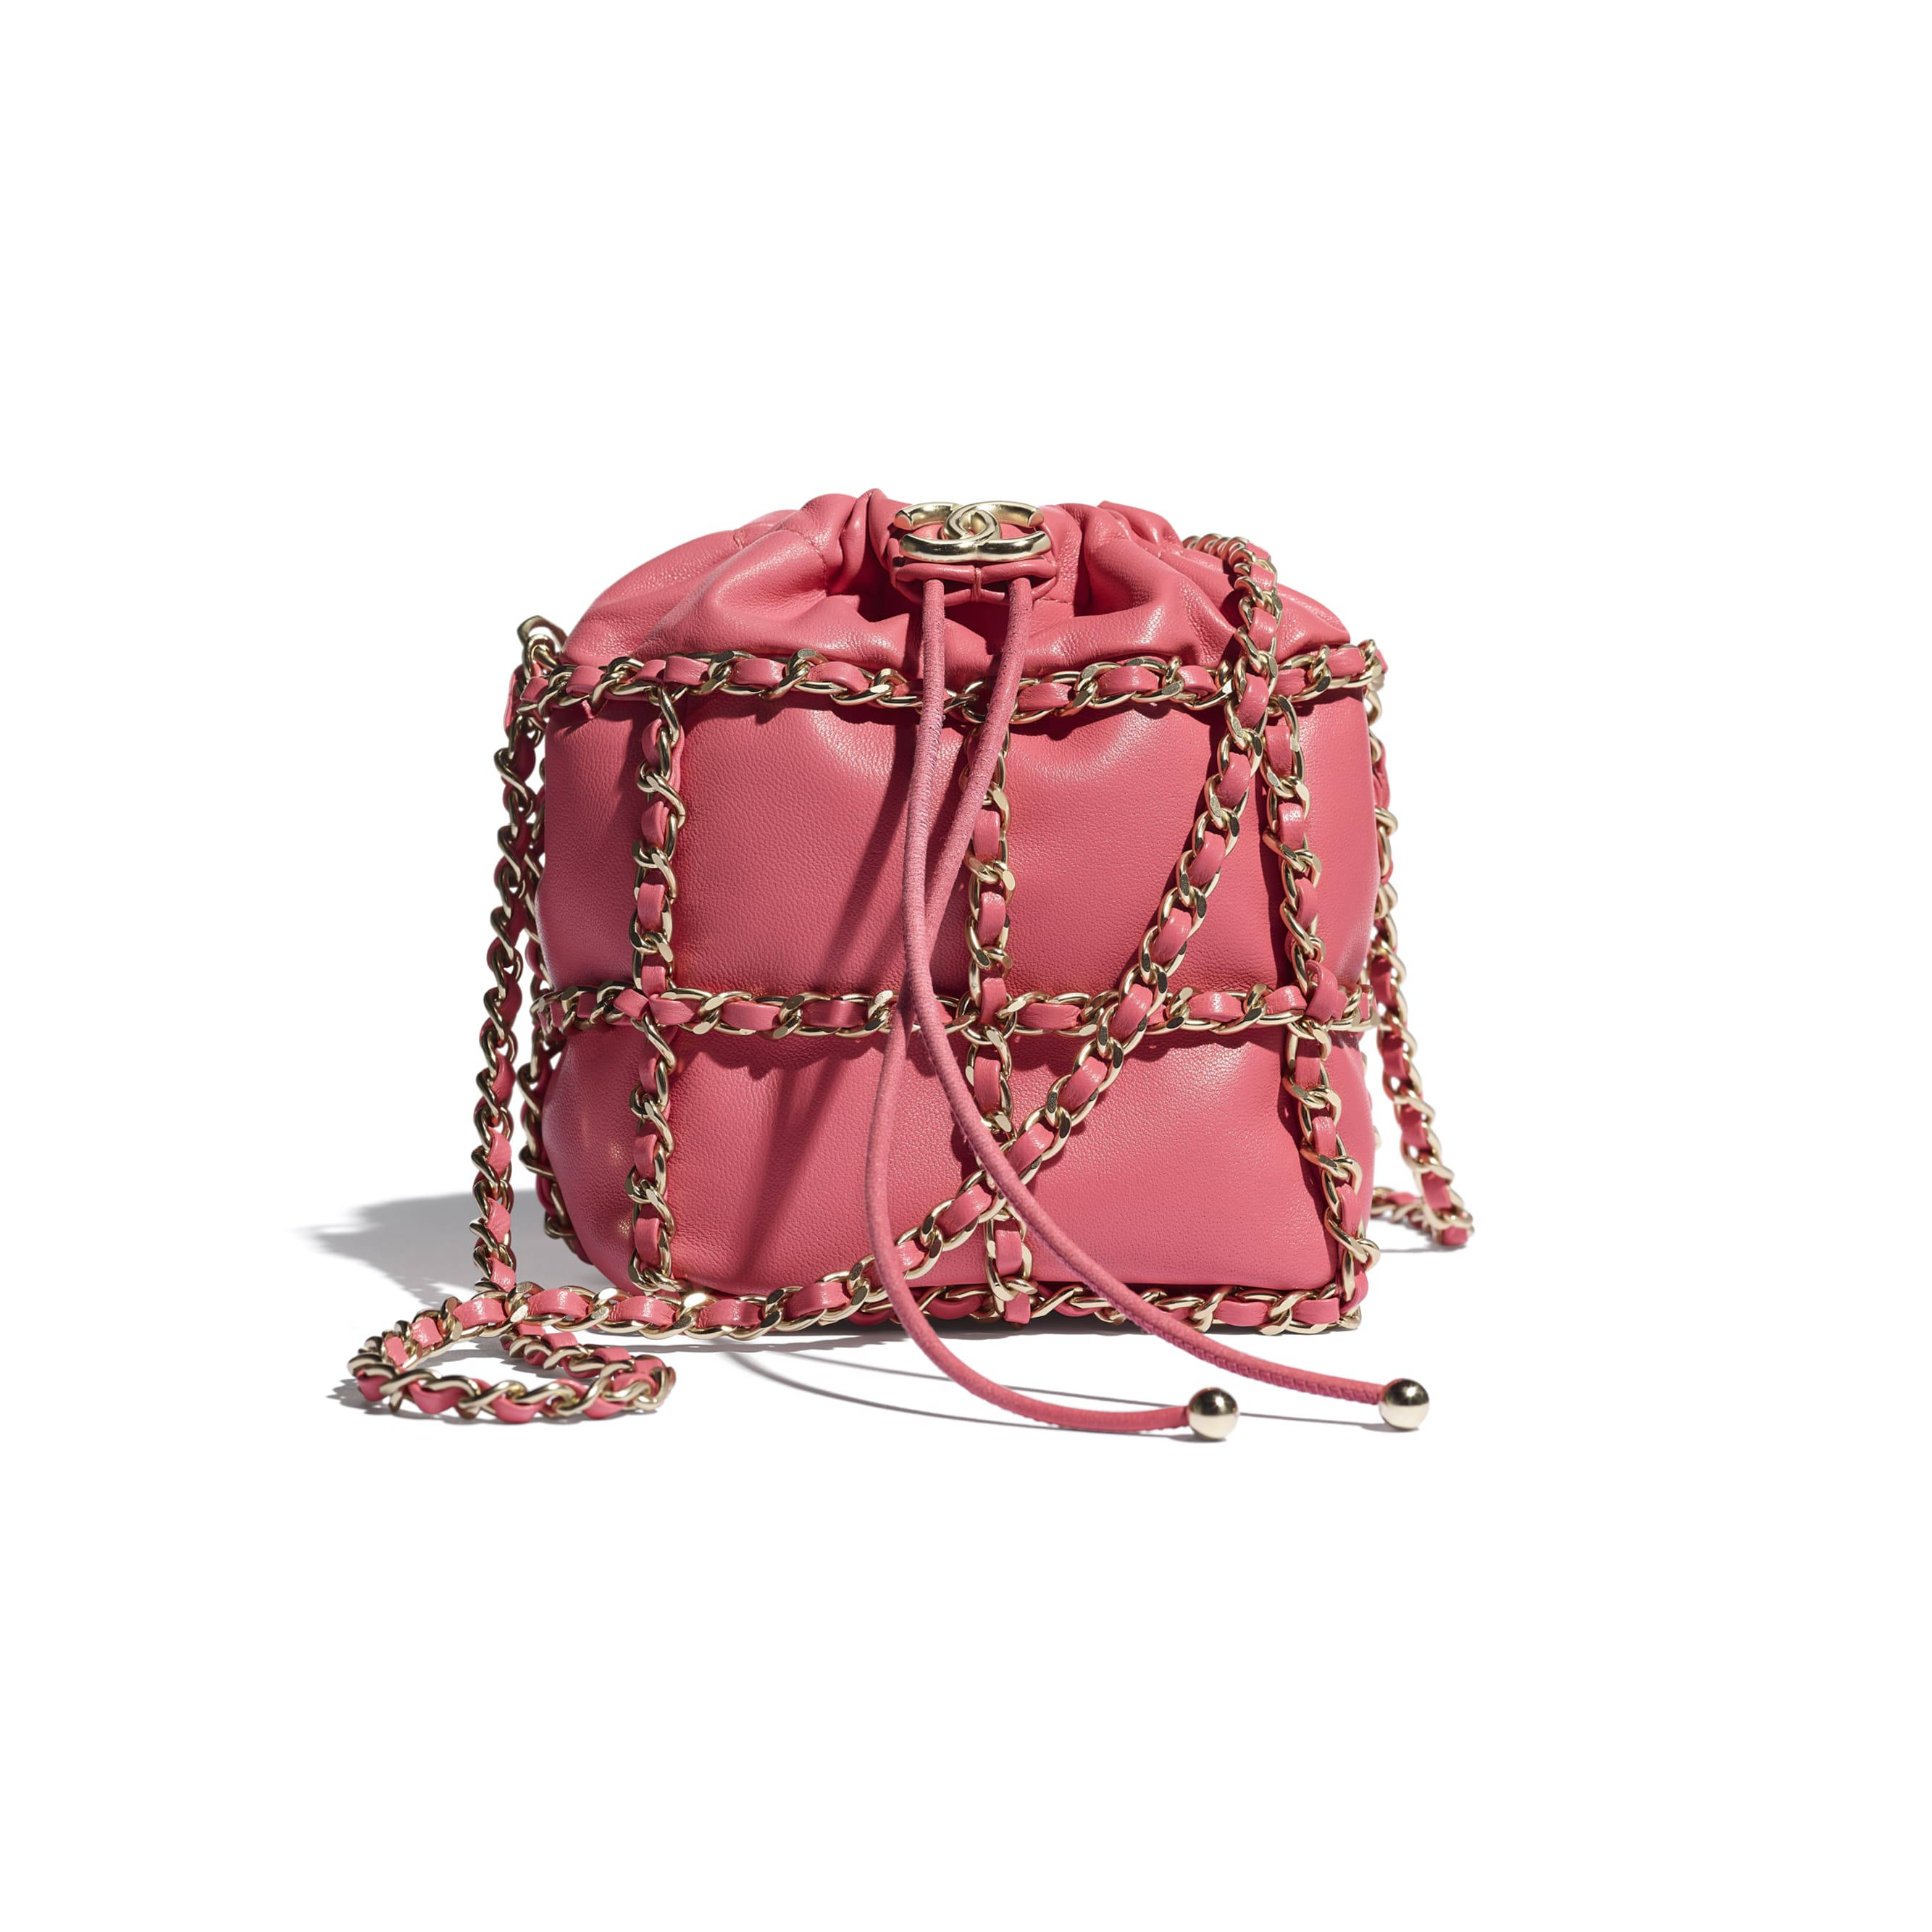 Small Drawstring Bag - Coral - Lambskin & Gold Metal  - CHANEL - Default view - see standard sized version